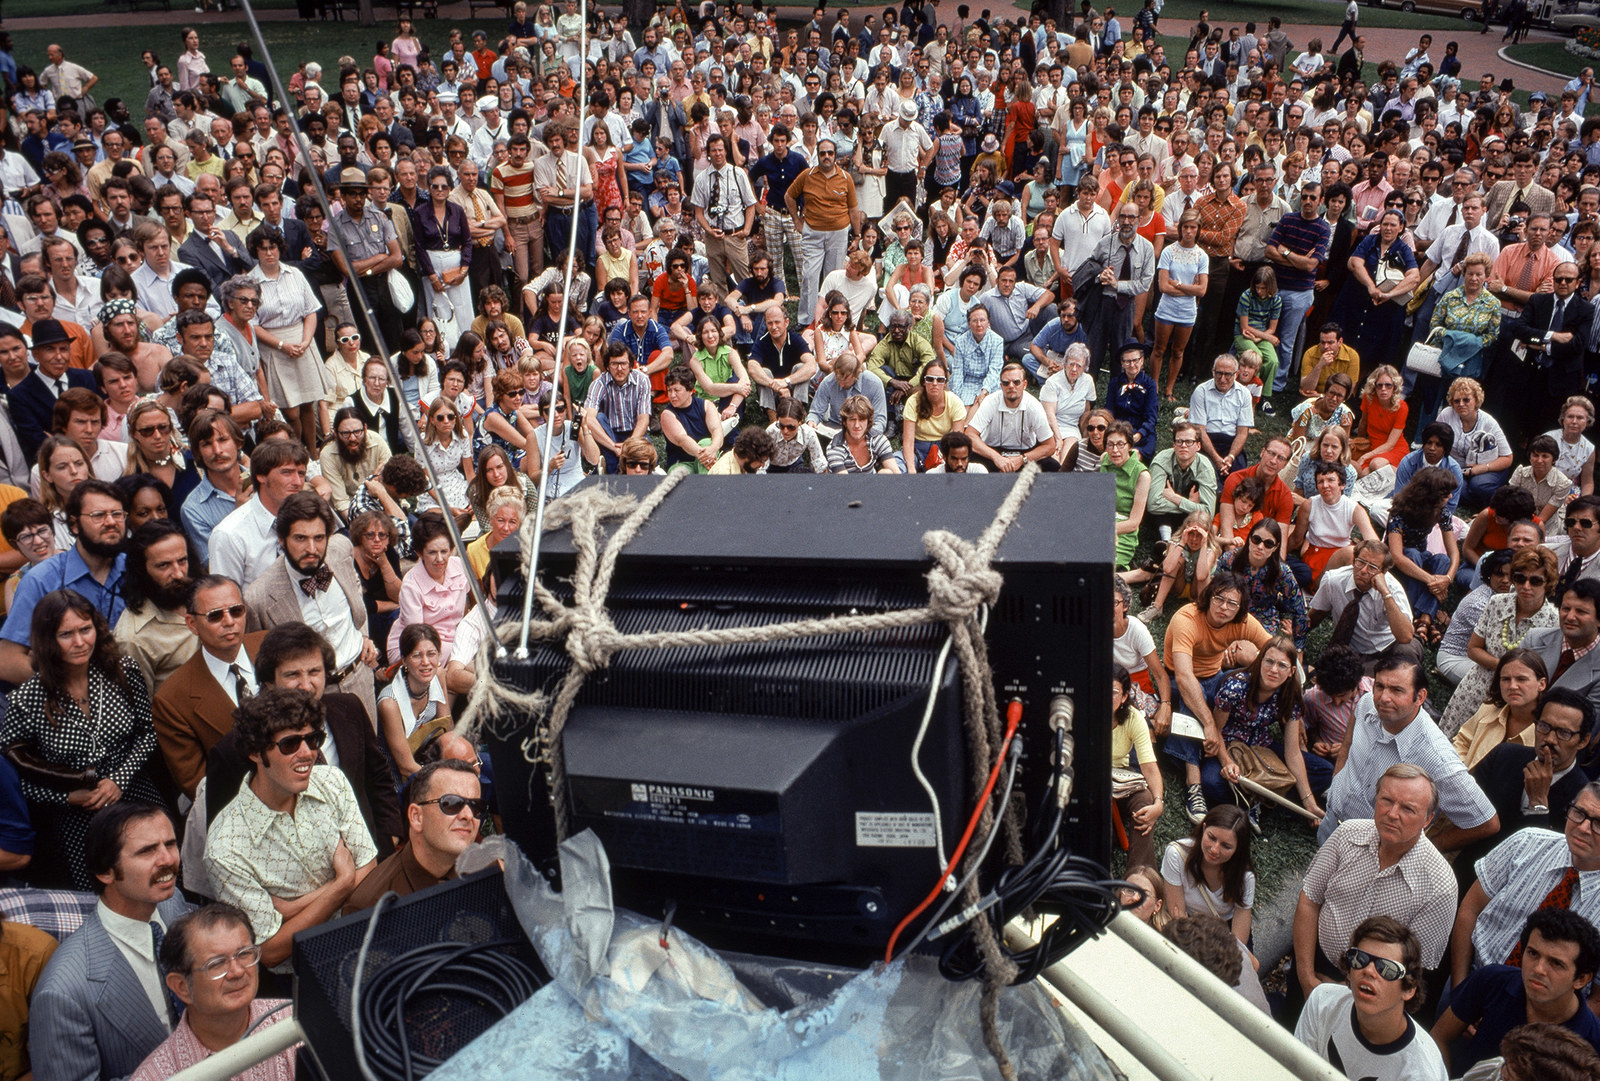 A crowd in front of the White House watches President Nixon's resignation speech.